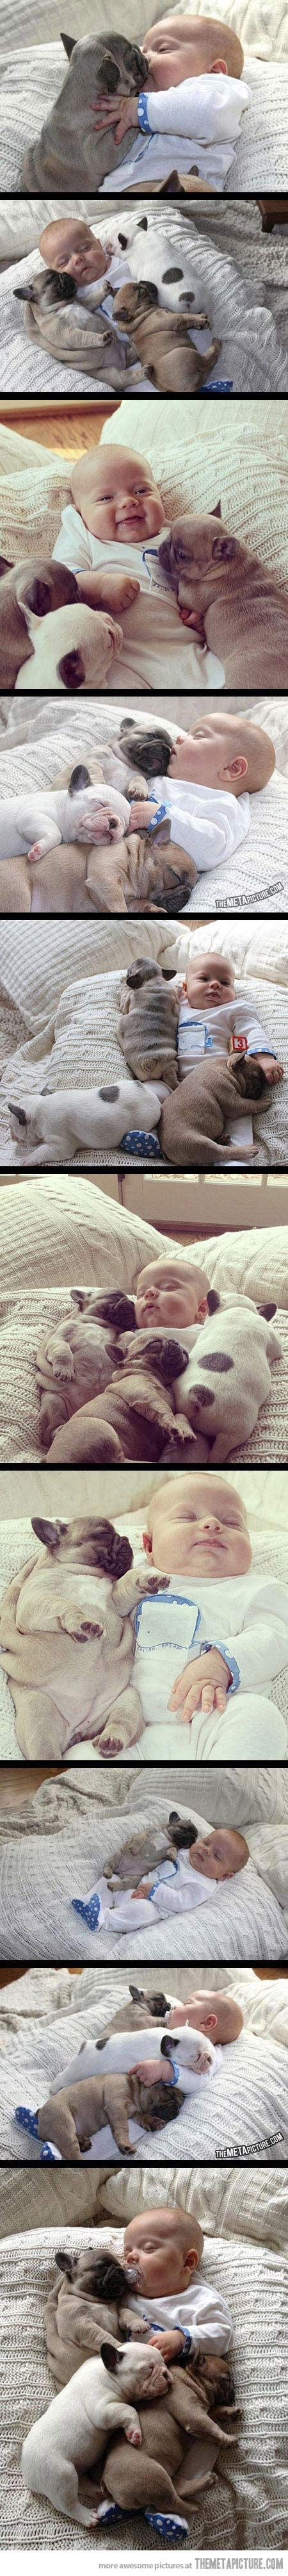 Puppies and baby